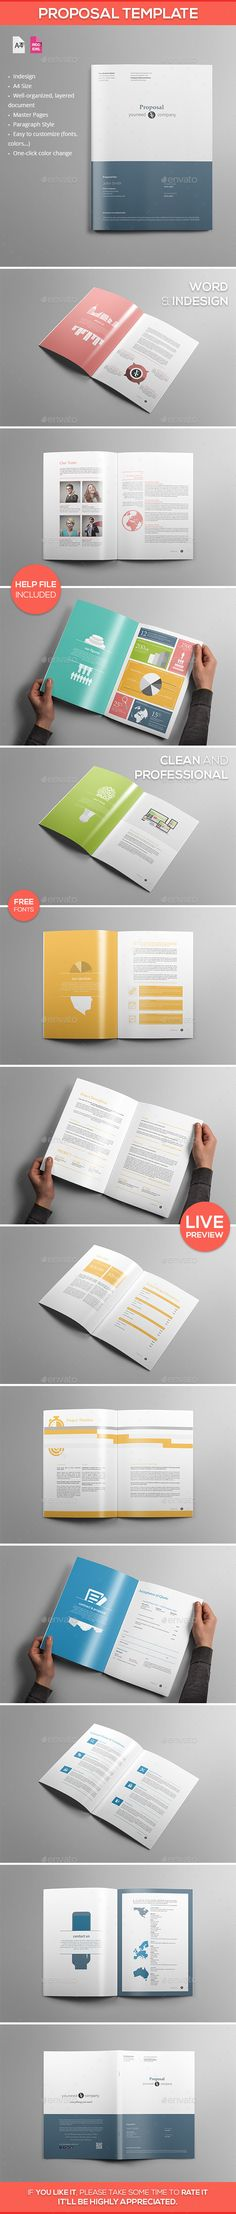 Business Proposal Template Single Page Us Letter  Proposals